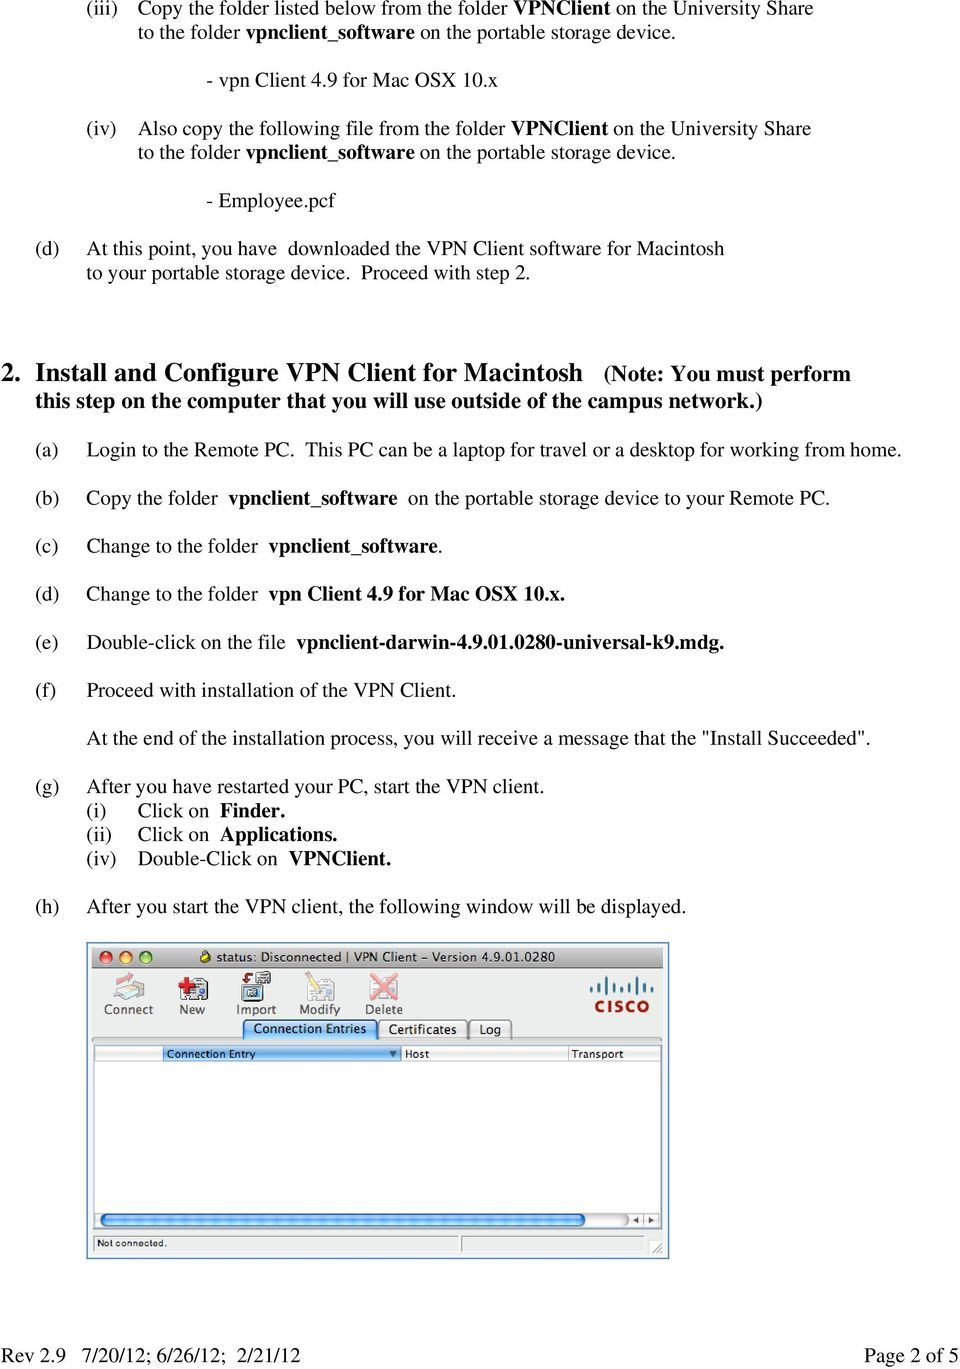 pcf At this point, you have downloaded the VPN Client software for Macintosh to your portable storage device. Proceed with step 2.